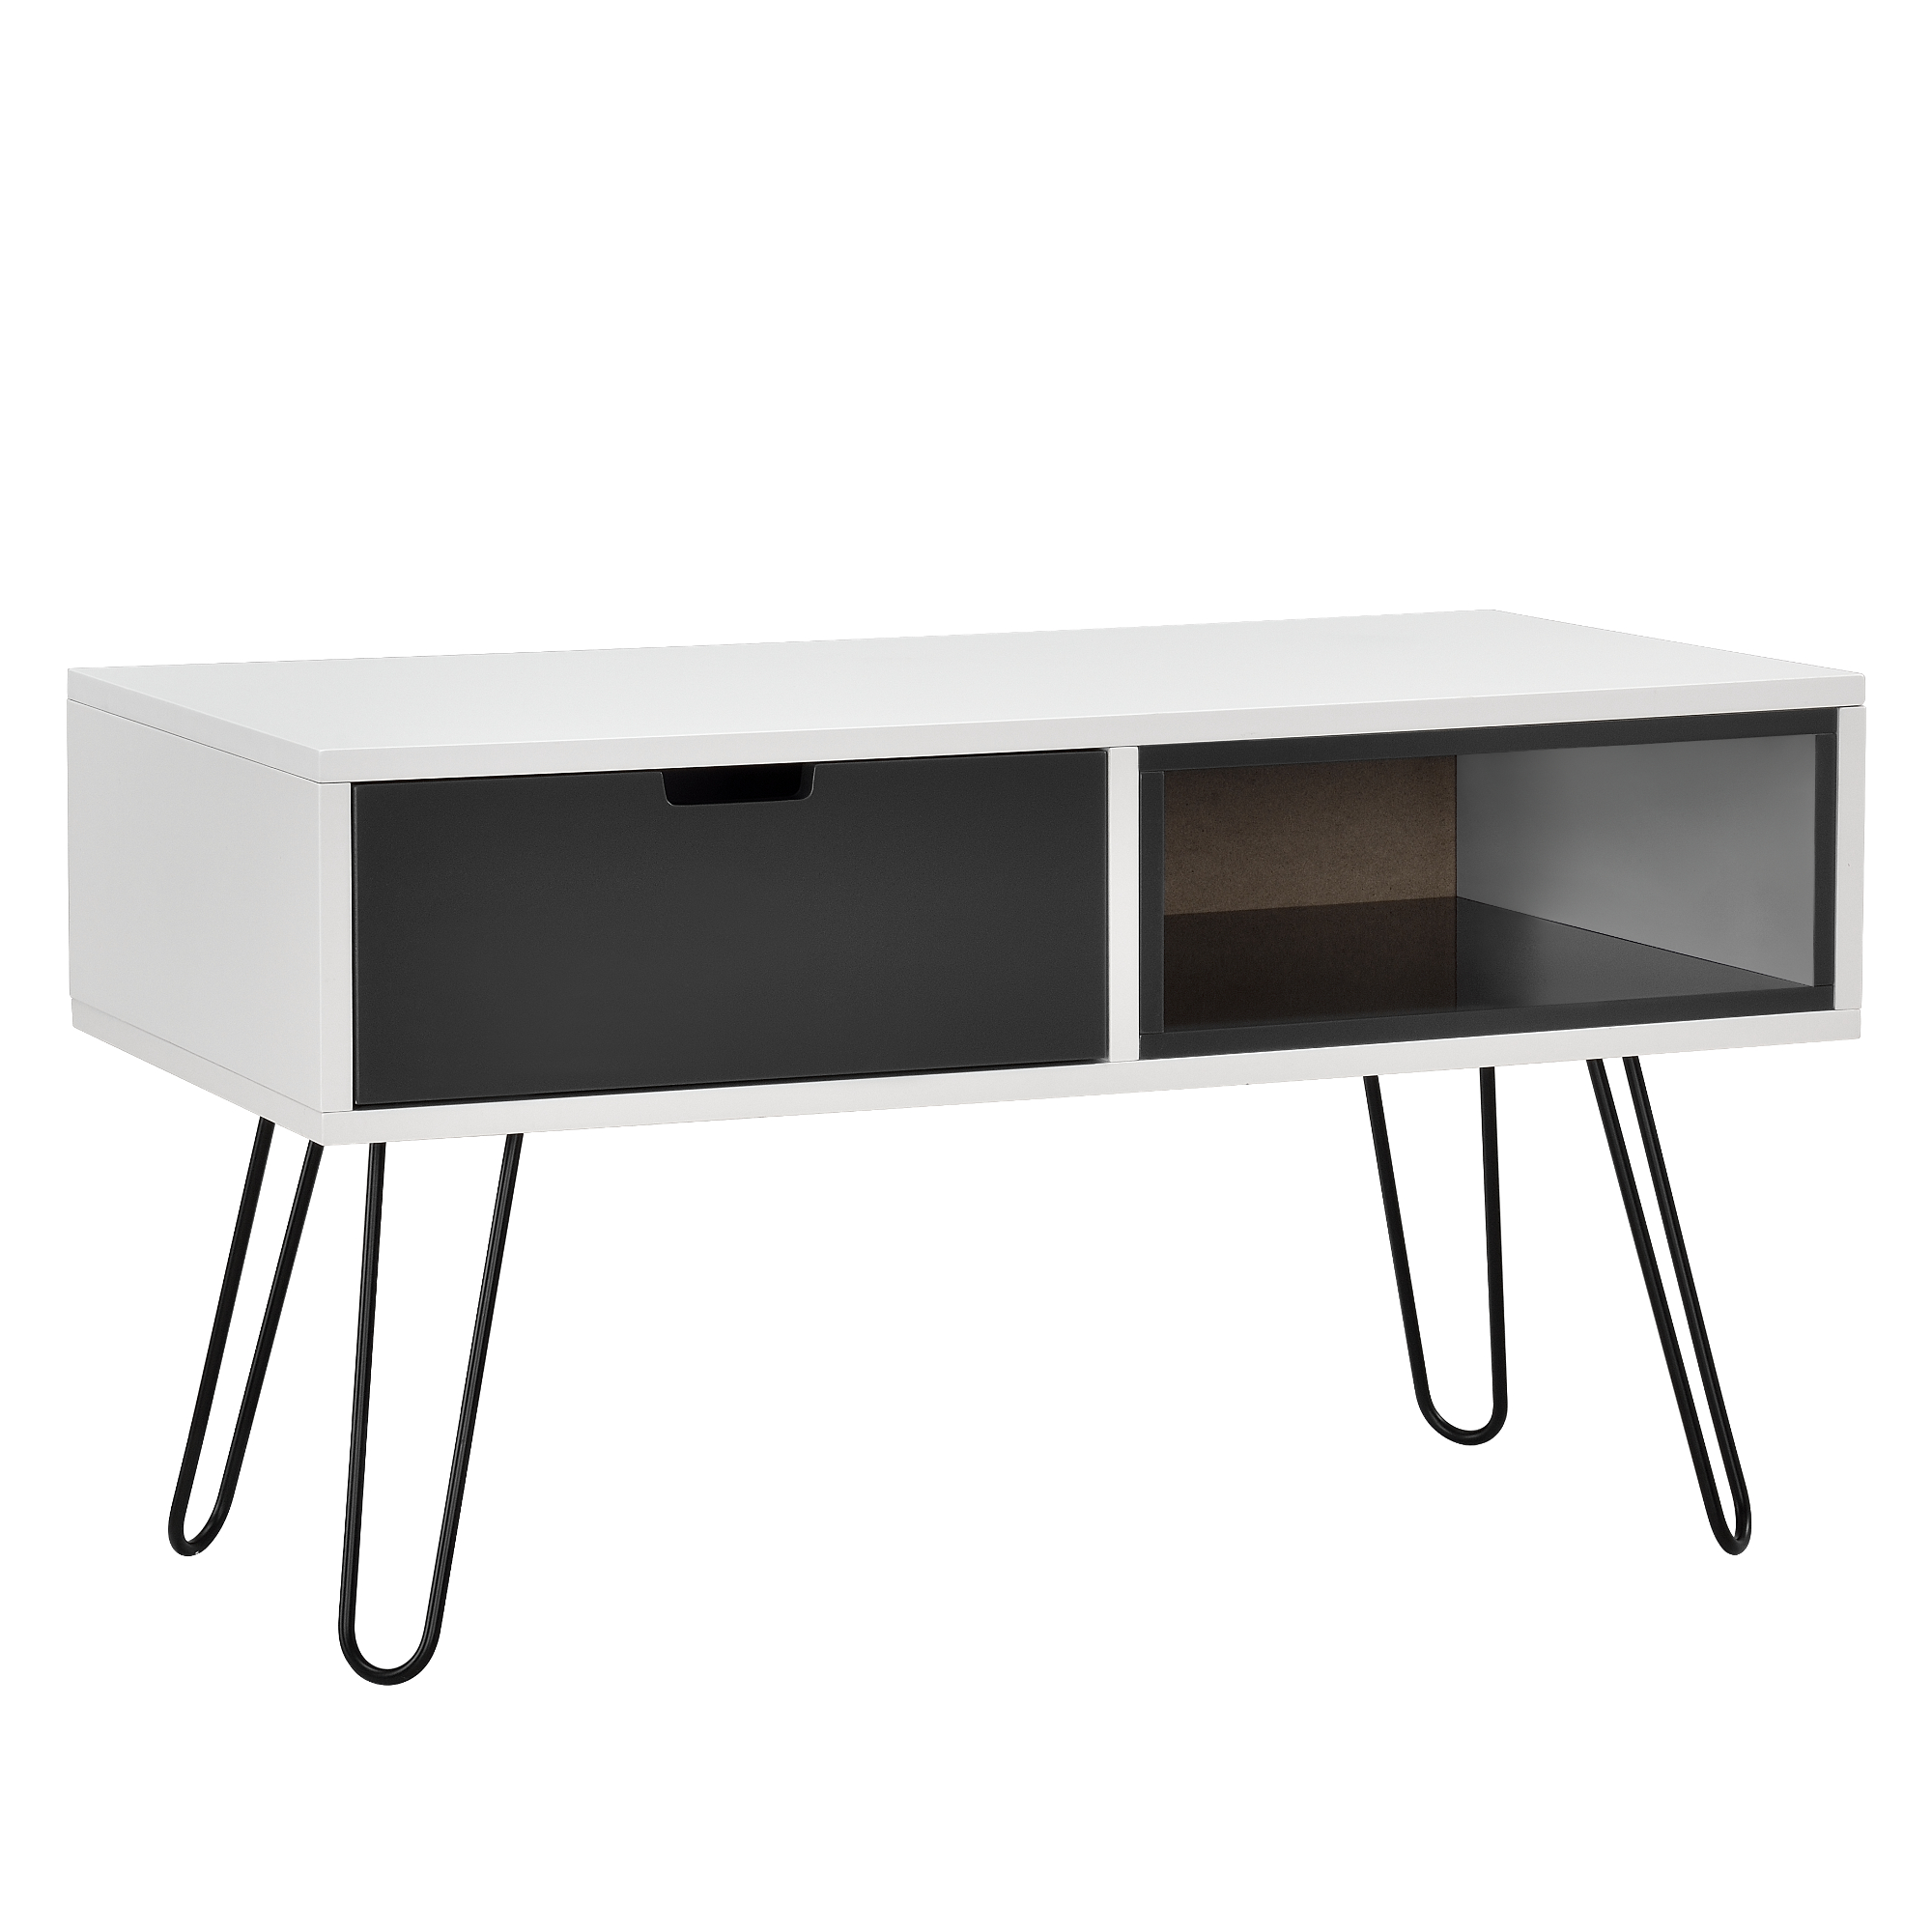 buffet blanc console commode table d 39 appoint tv table armoire ebay. Black Bedroom Furniture Sets. Home Design Ideas